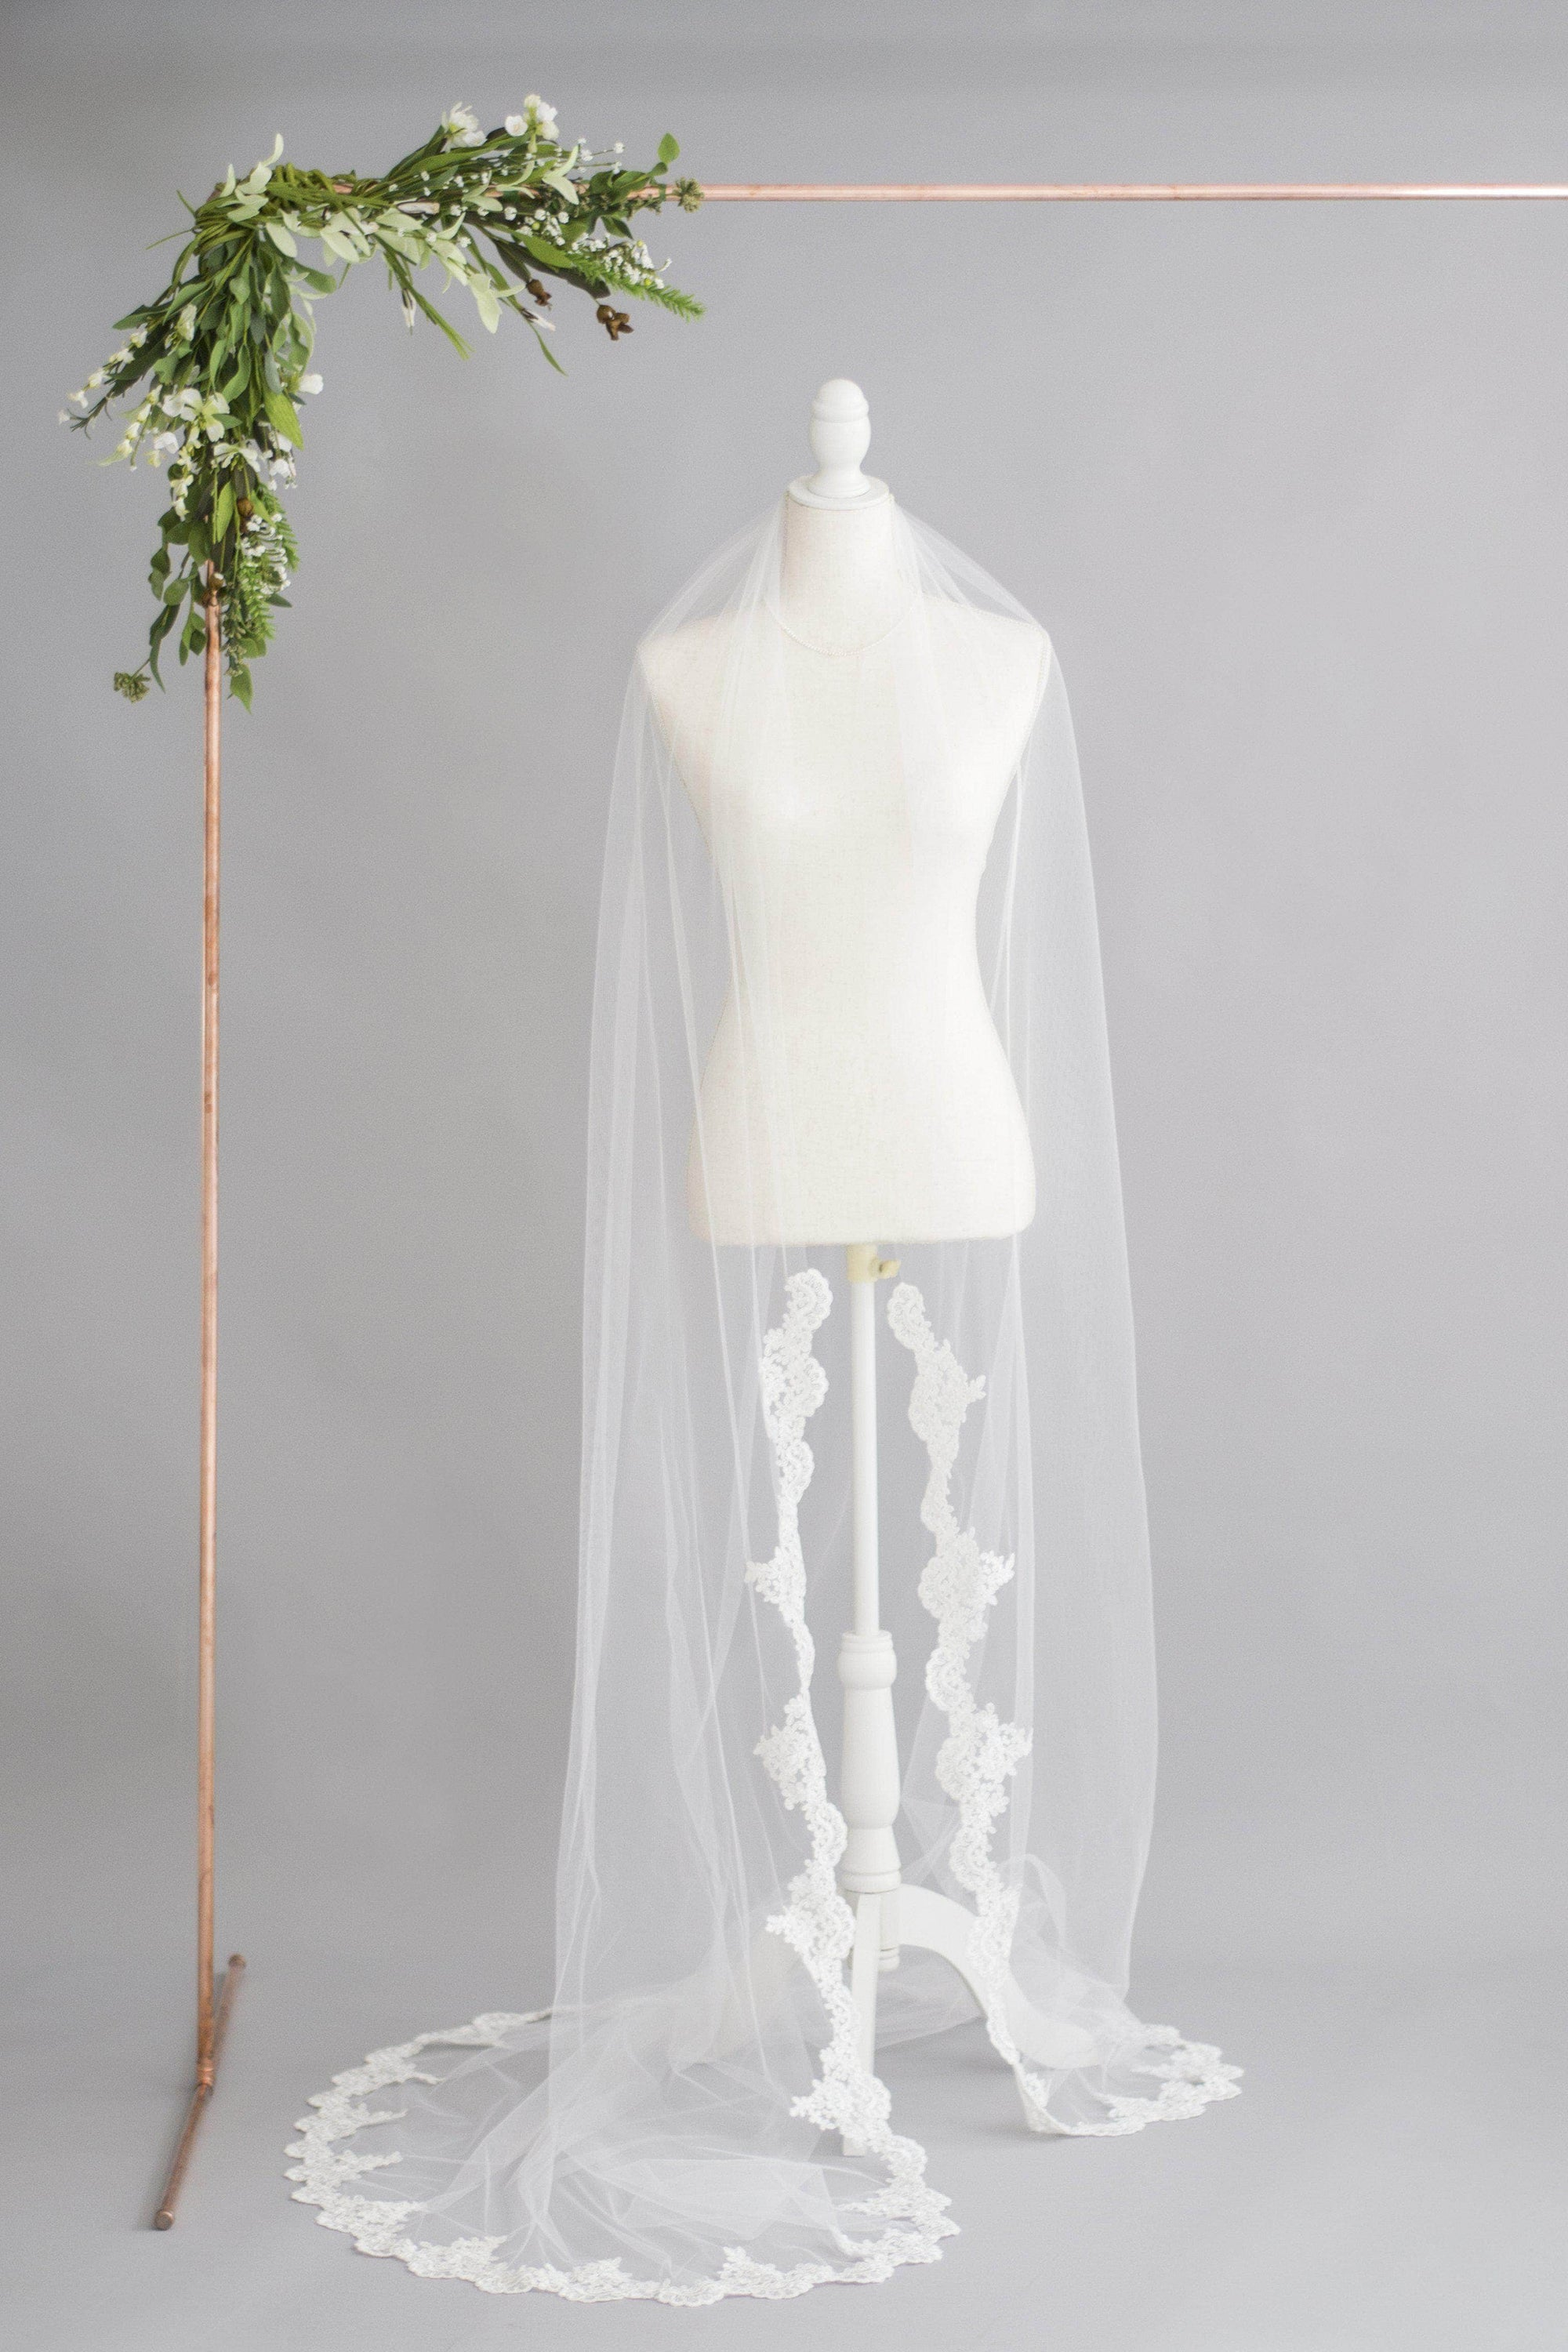 Wedding Veil Semi edged wedding veil with lace starting around wrists - 'Emma'